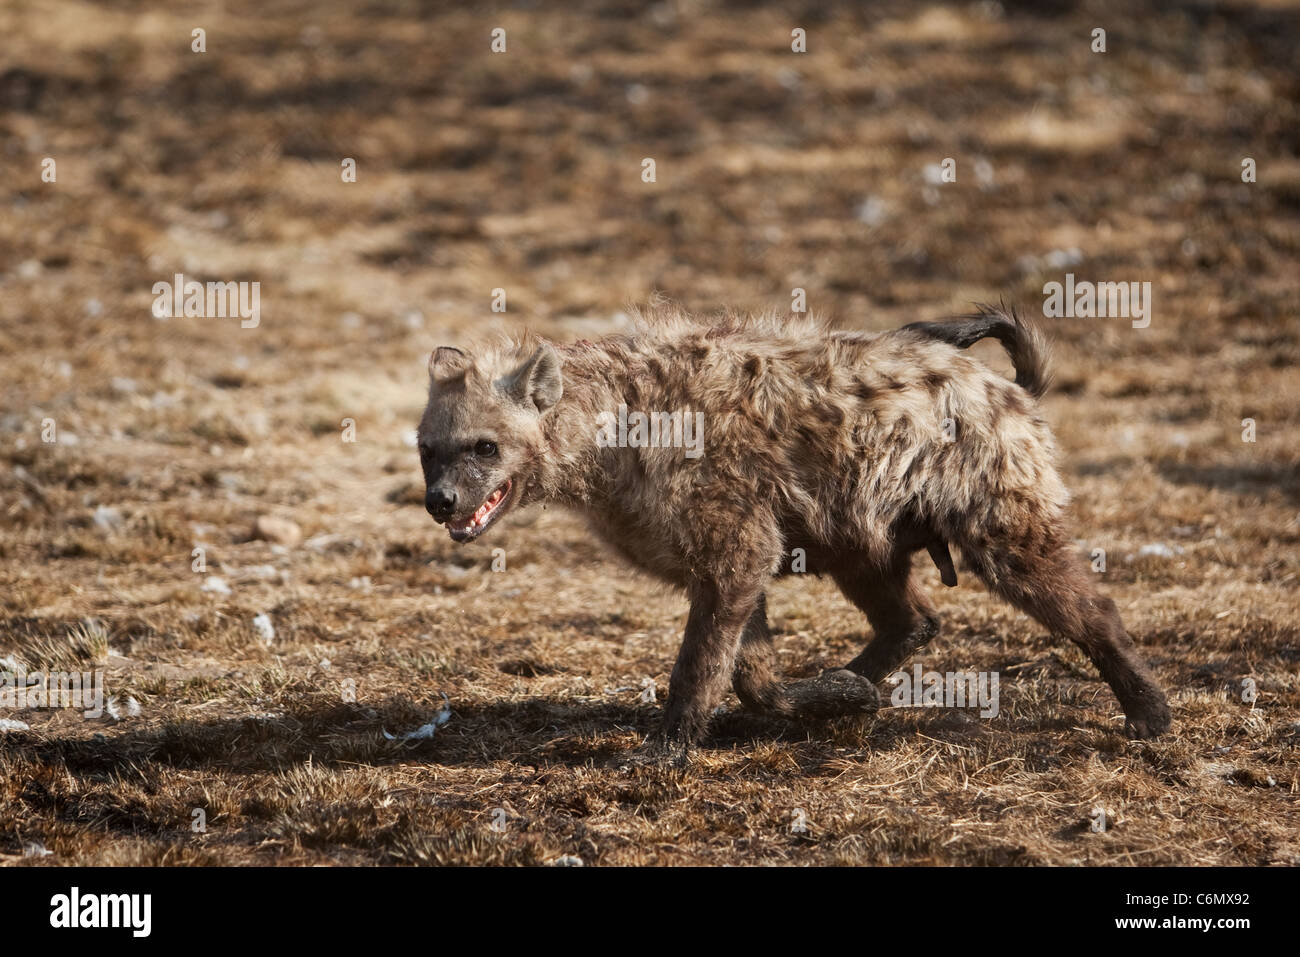 Hyena in aggressive stance during dominance fight - Stock Image